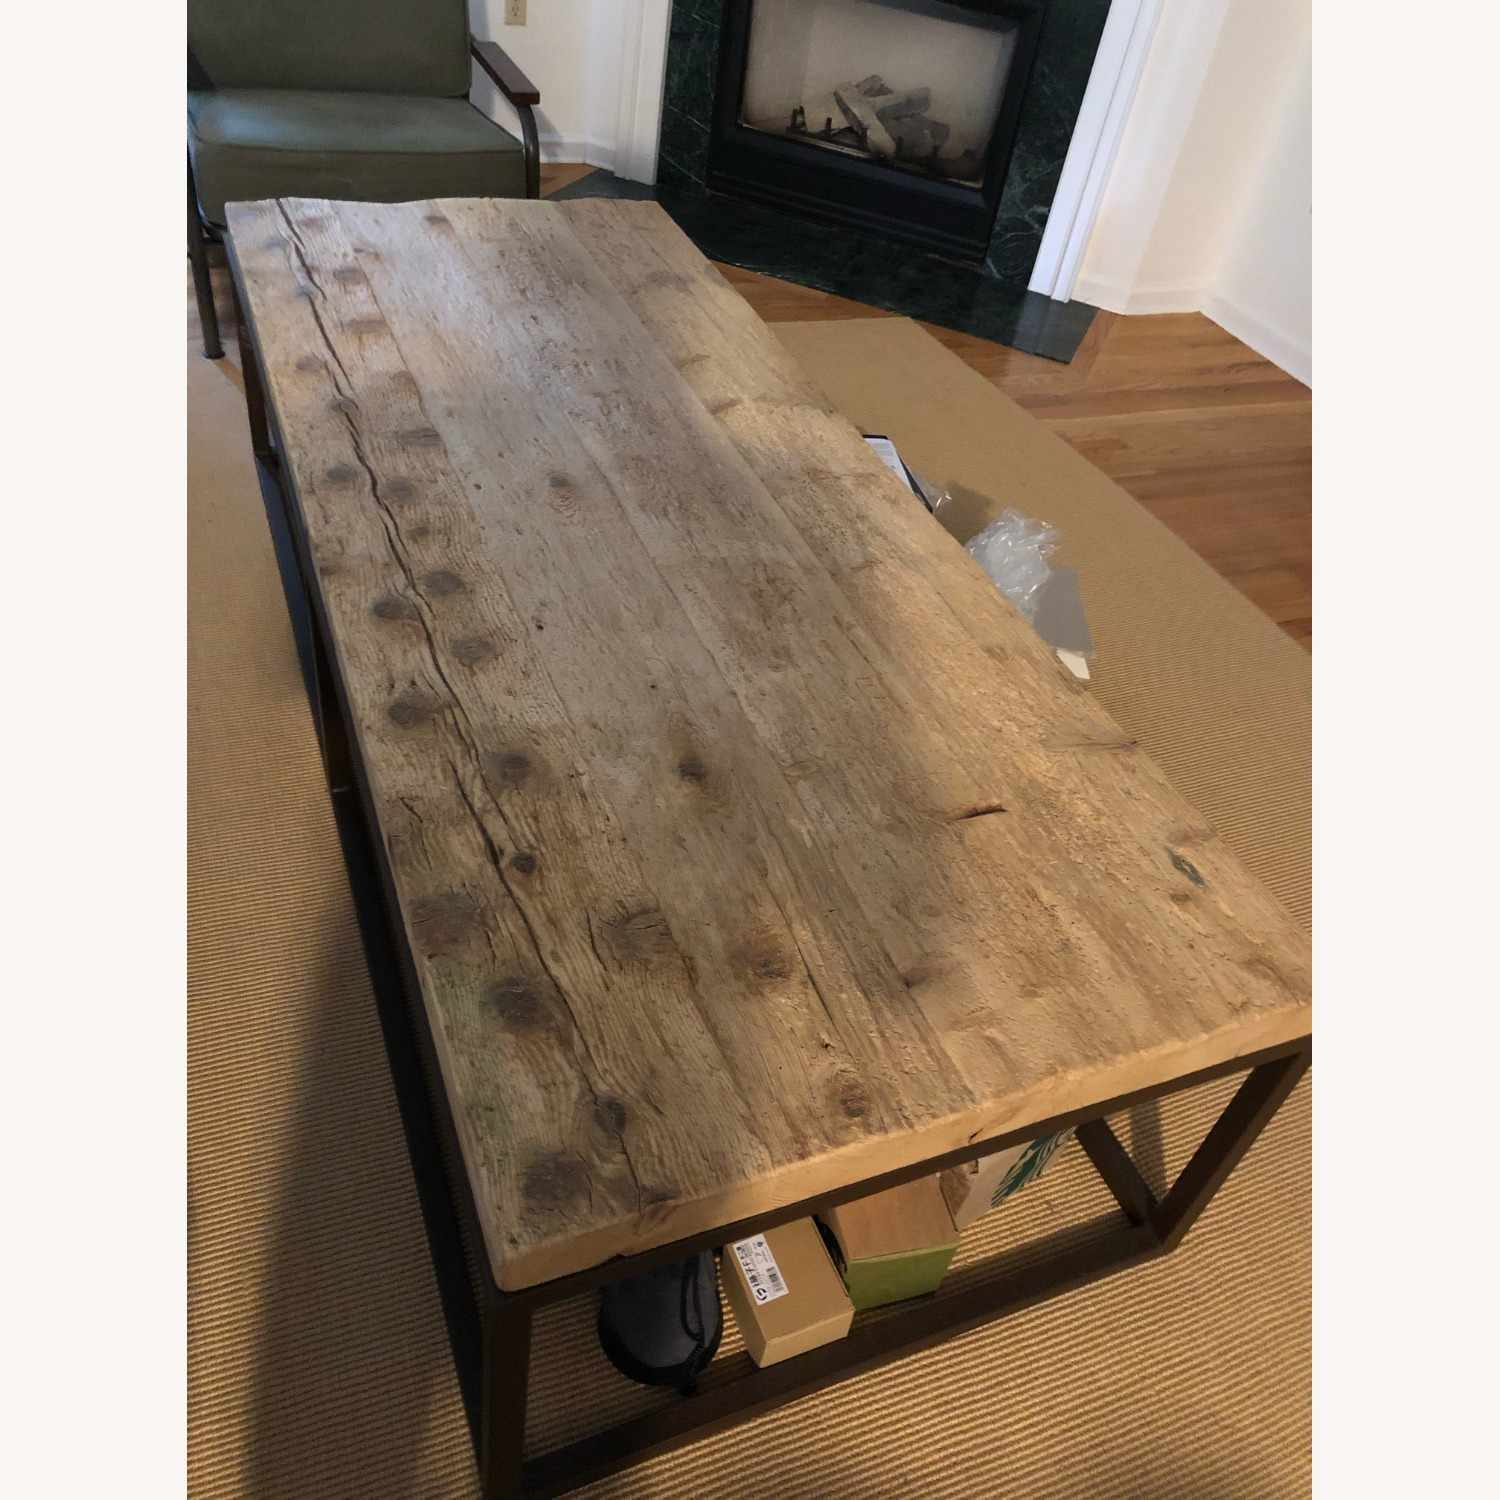 Restoration Hardware Reclaimed Coffee Table - image-1